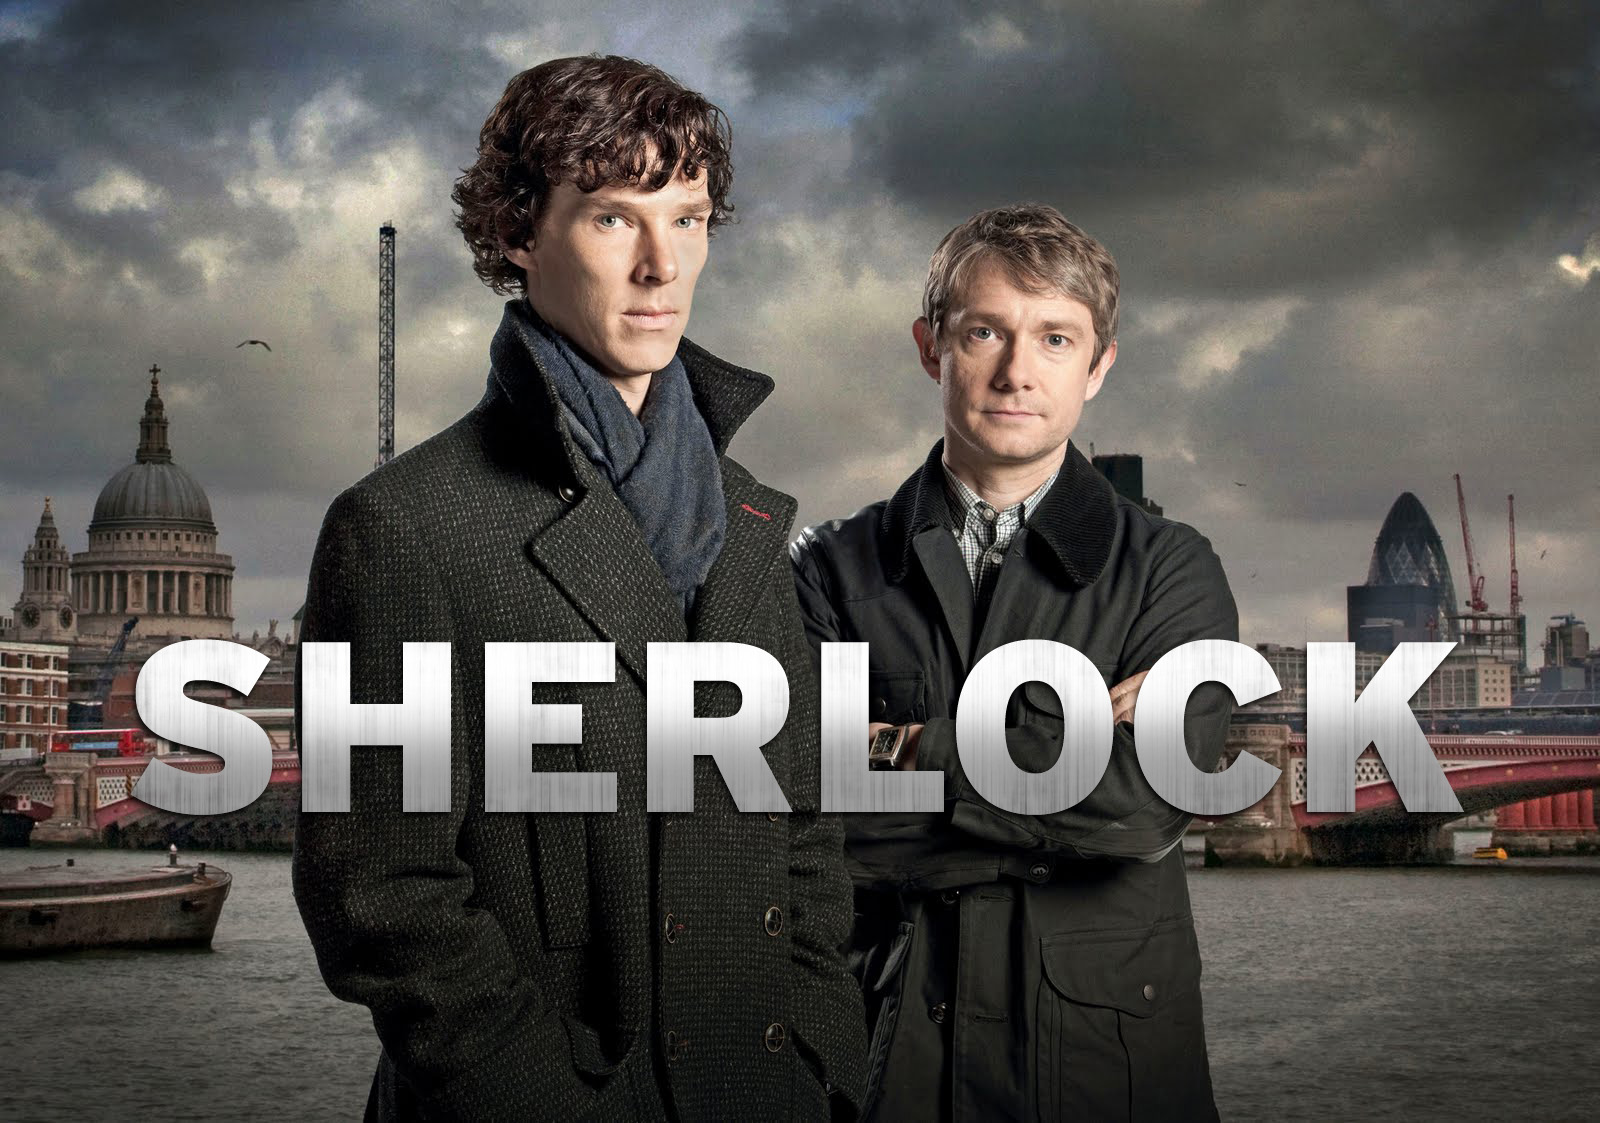 SHERLOCK ABOMINABLE VOSTFR BRIDE THE TÉLÉCHARGER